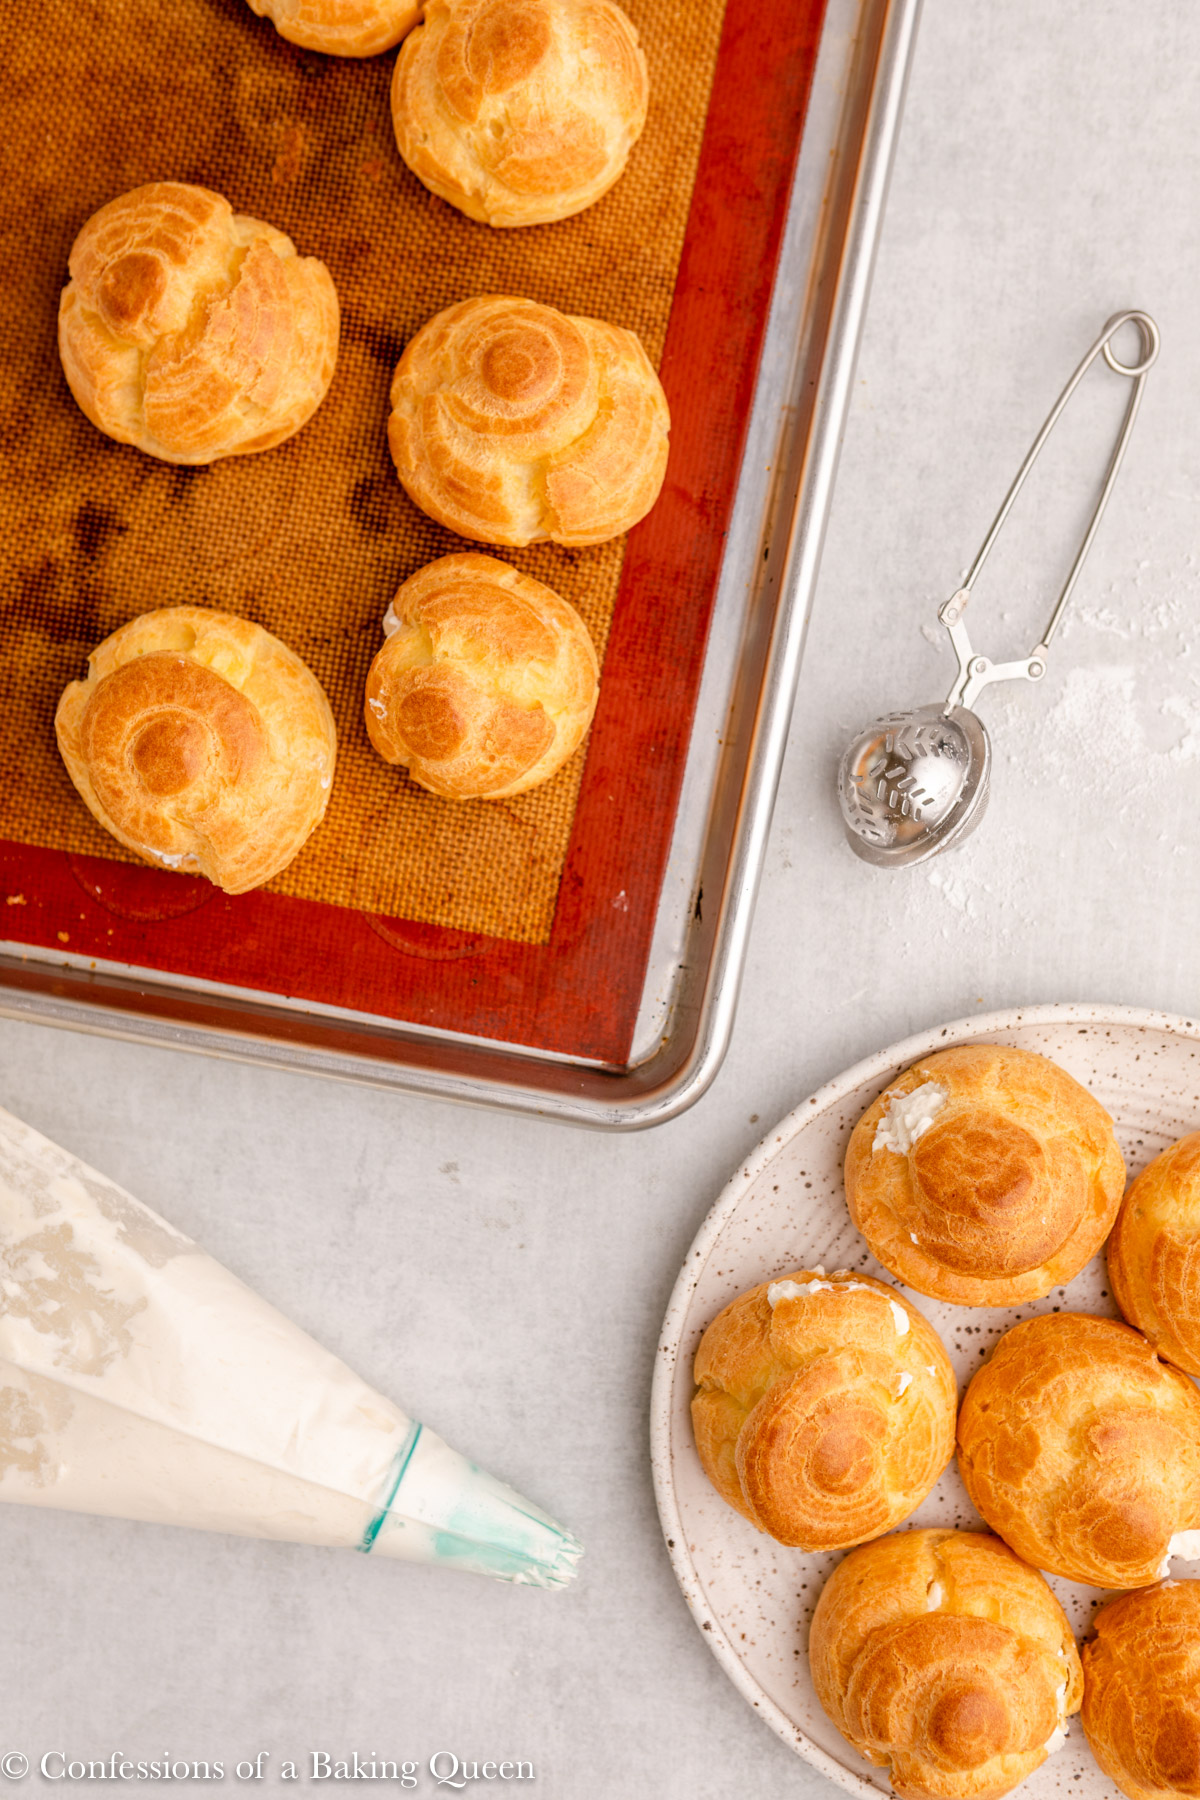 piping bag with whipped cream and a blue piping tip next to a plate full of cream puffs, a baking tray of choux pastry, and a powdered sugar sifter